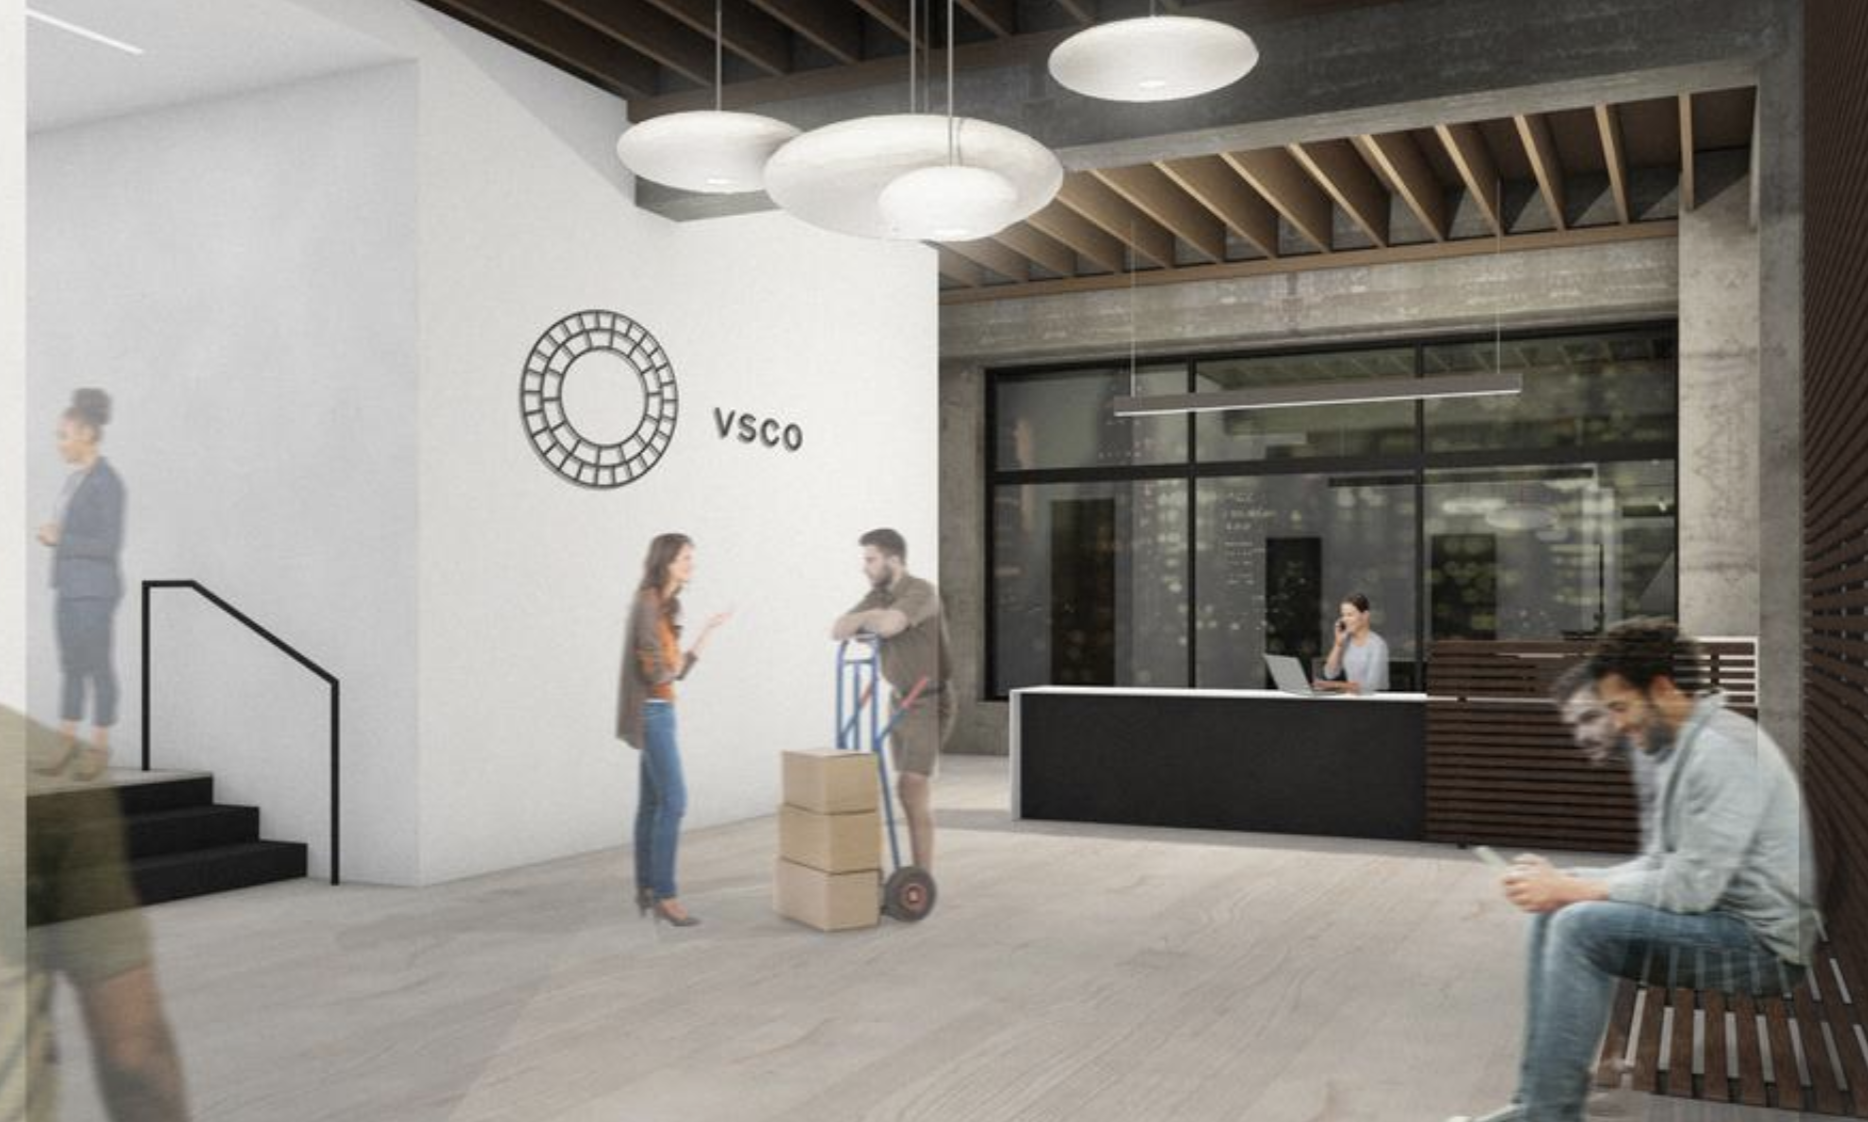 VSCO inks new Oakland HQ lease after raising $40 million    August 22, 2019 — VSCO plans to settle into a new, larger headquarters in downtown Oakland as it continues growing. The firm recently landed $40 million in venture capital funding.